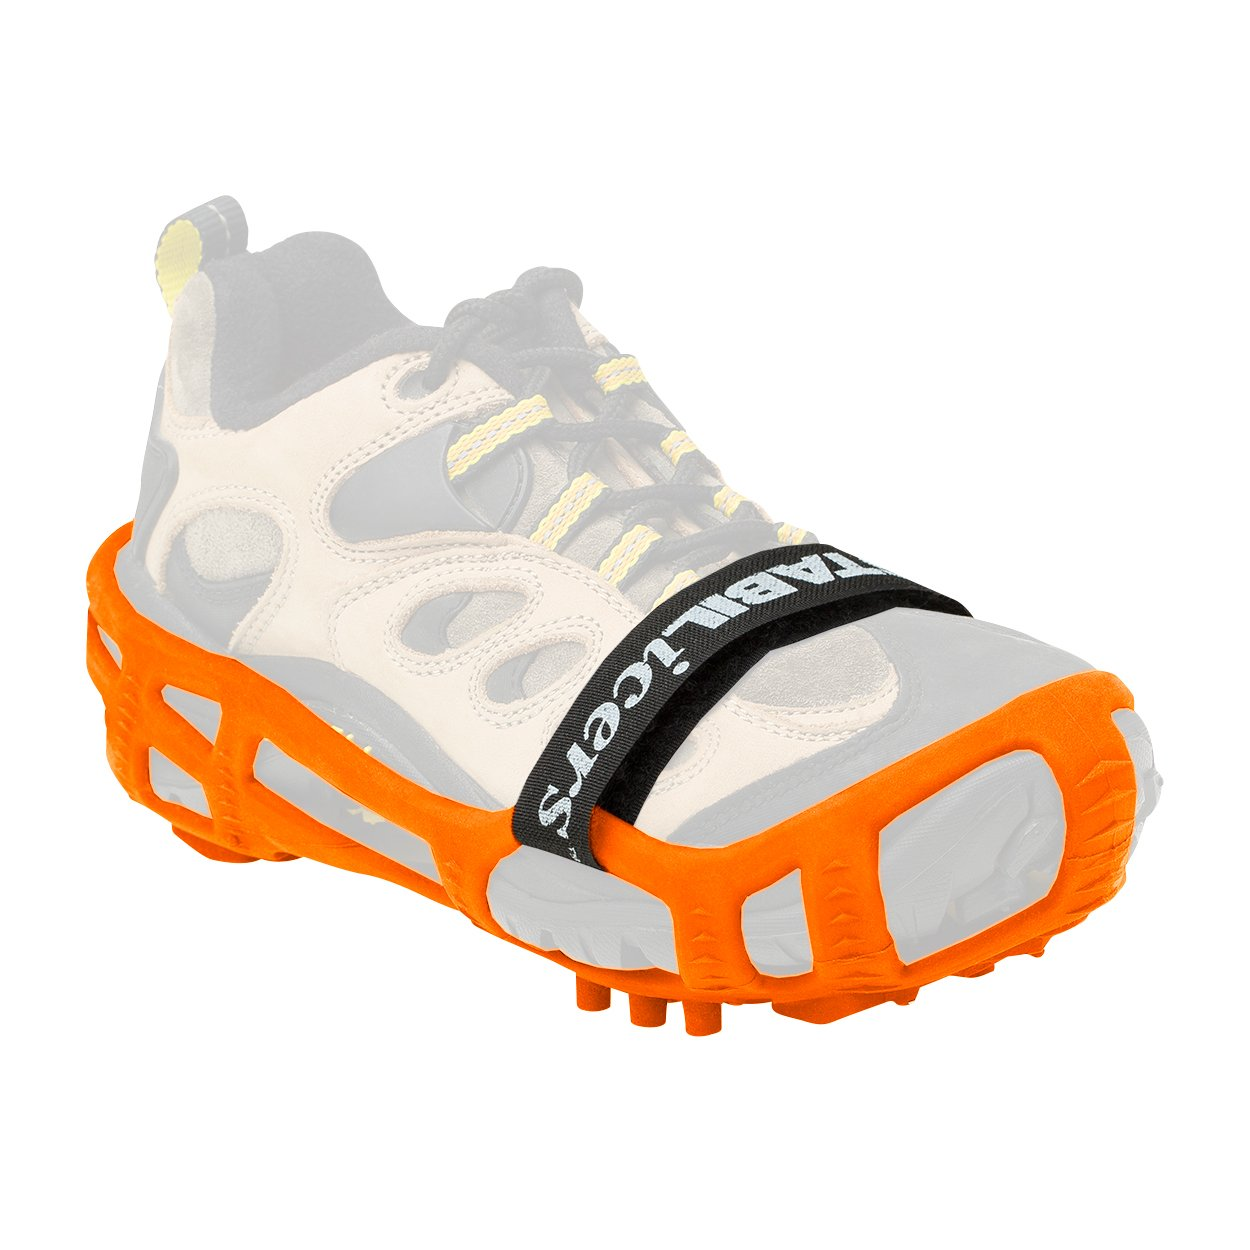 STABILicers Walk with Powder Strap, Snow and Ice Traction Cleats for Shoes and Boots, Made in USA, Orange, Size SM